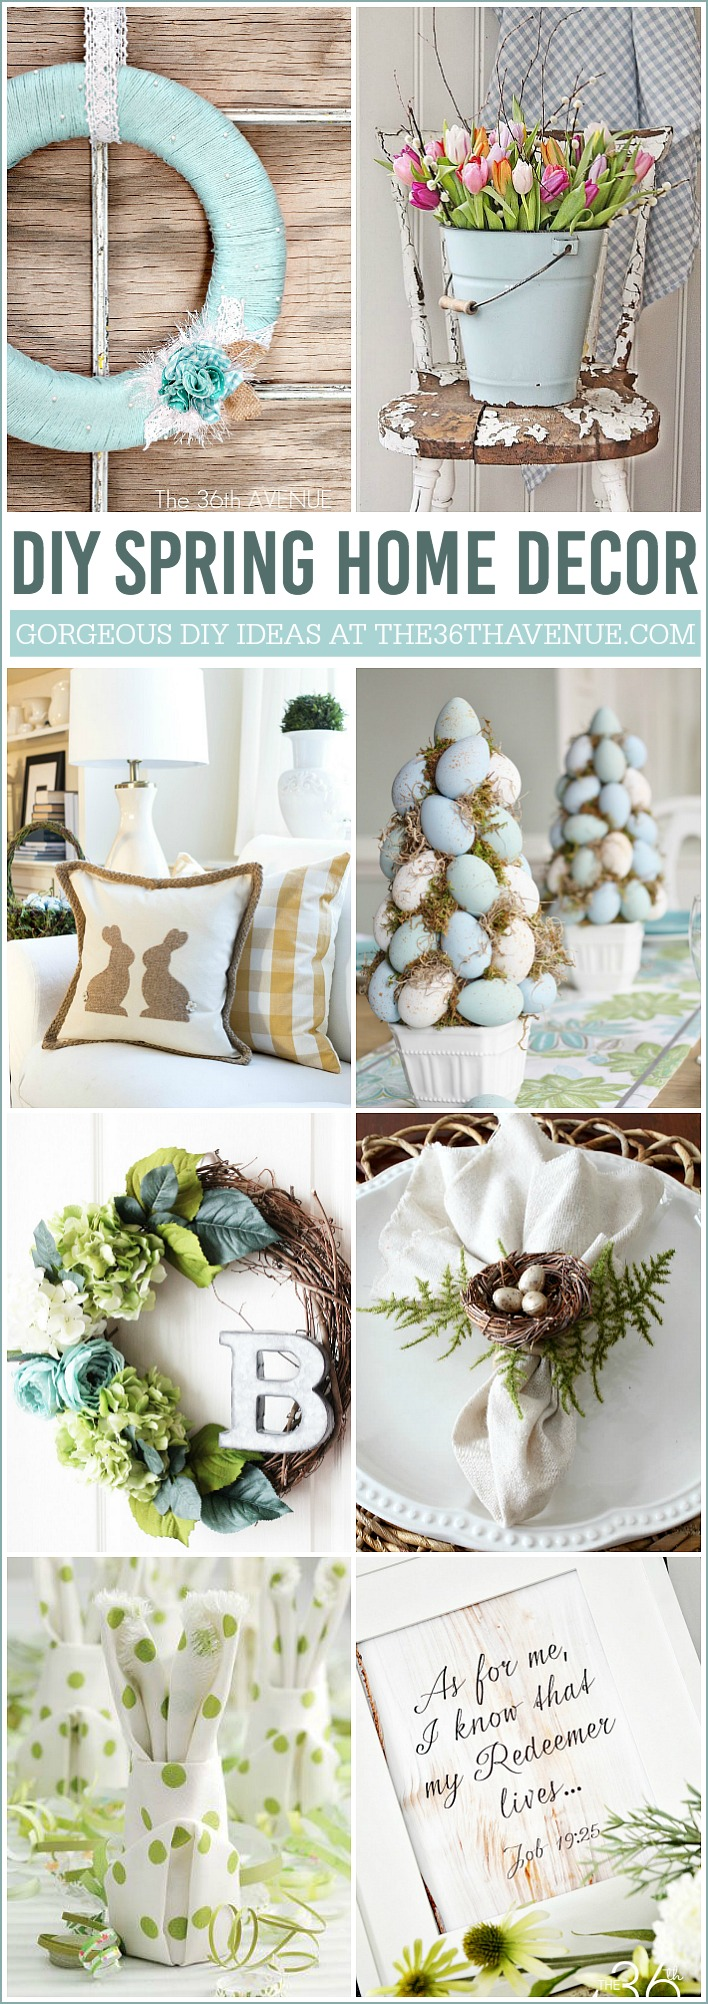 DIY Home Decor Spring Ideas the36thavenue.com